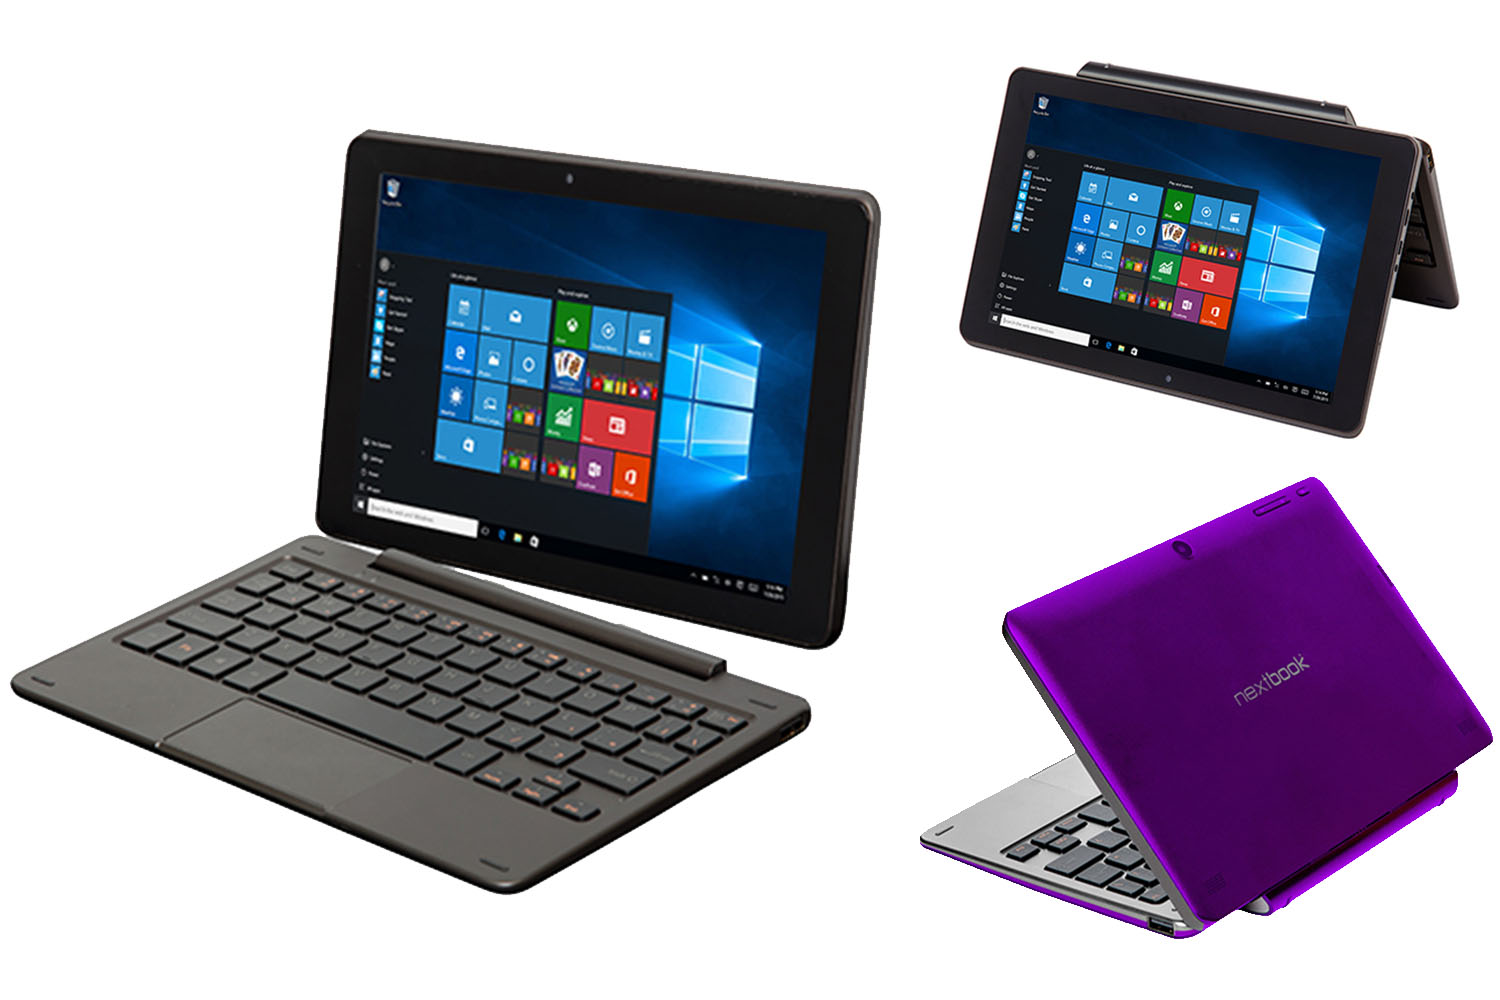 Windows nextbook flex 10 - Is This The Cheapest Windows 10 Tablet Ever The Nextbook Flexx Retails For Only 139